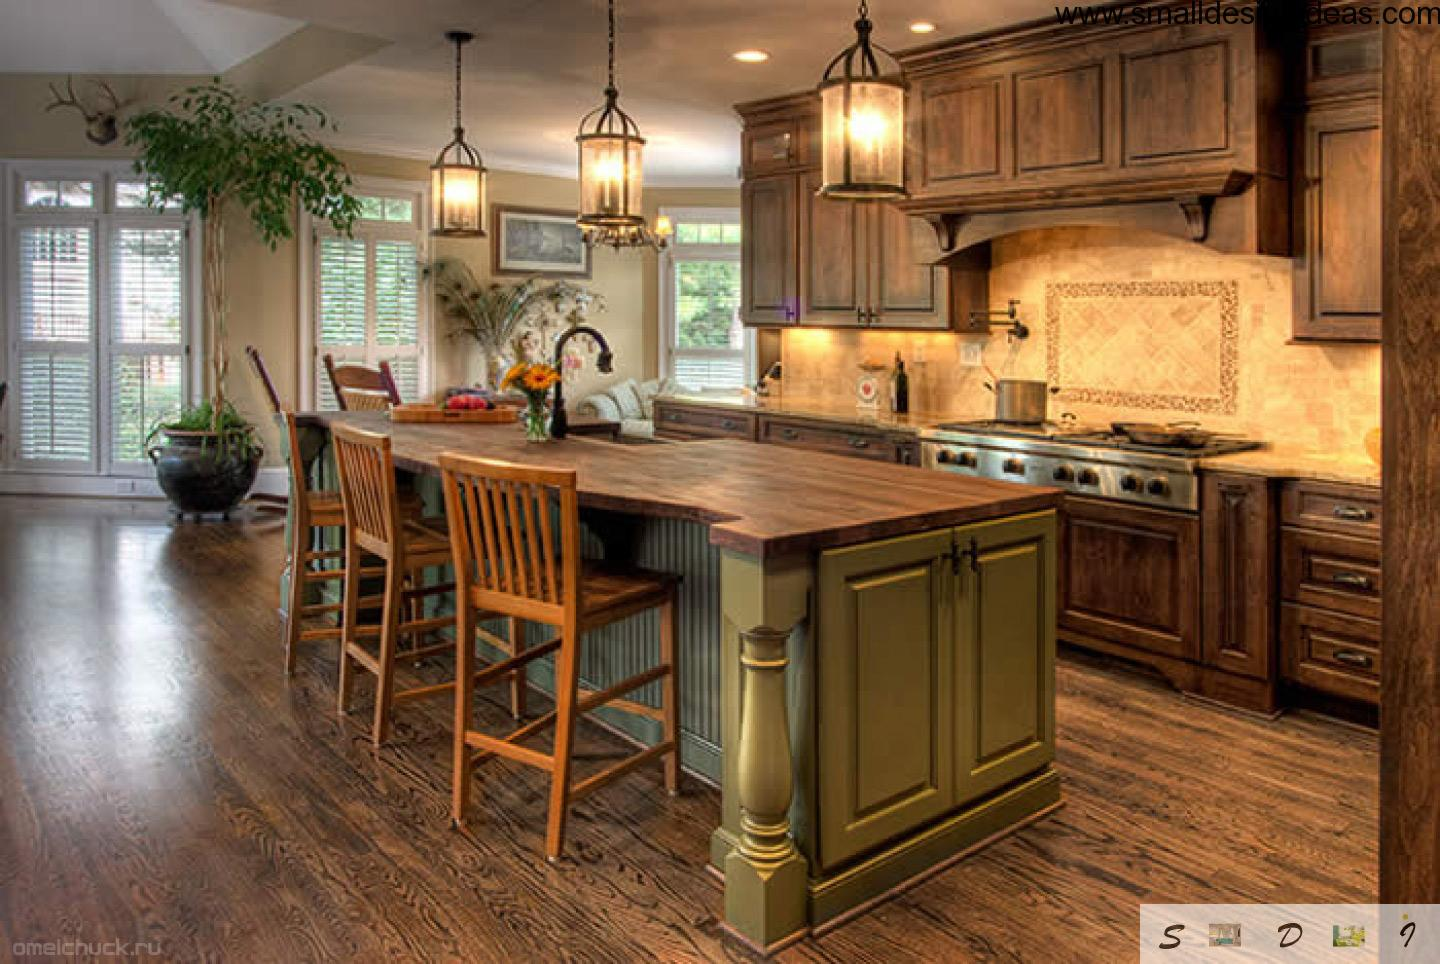 english style country kitchen design island layout wooden trimming create country kitchen design ideas kitchen design ideas